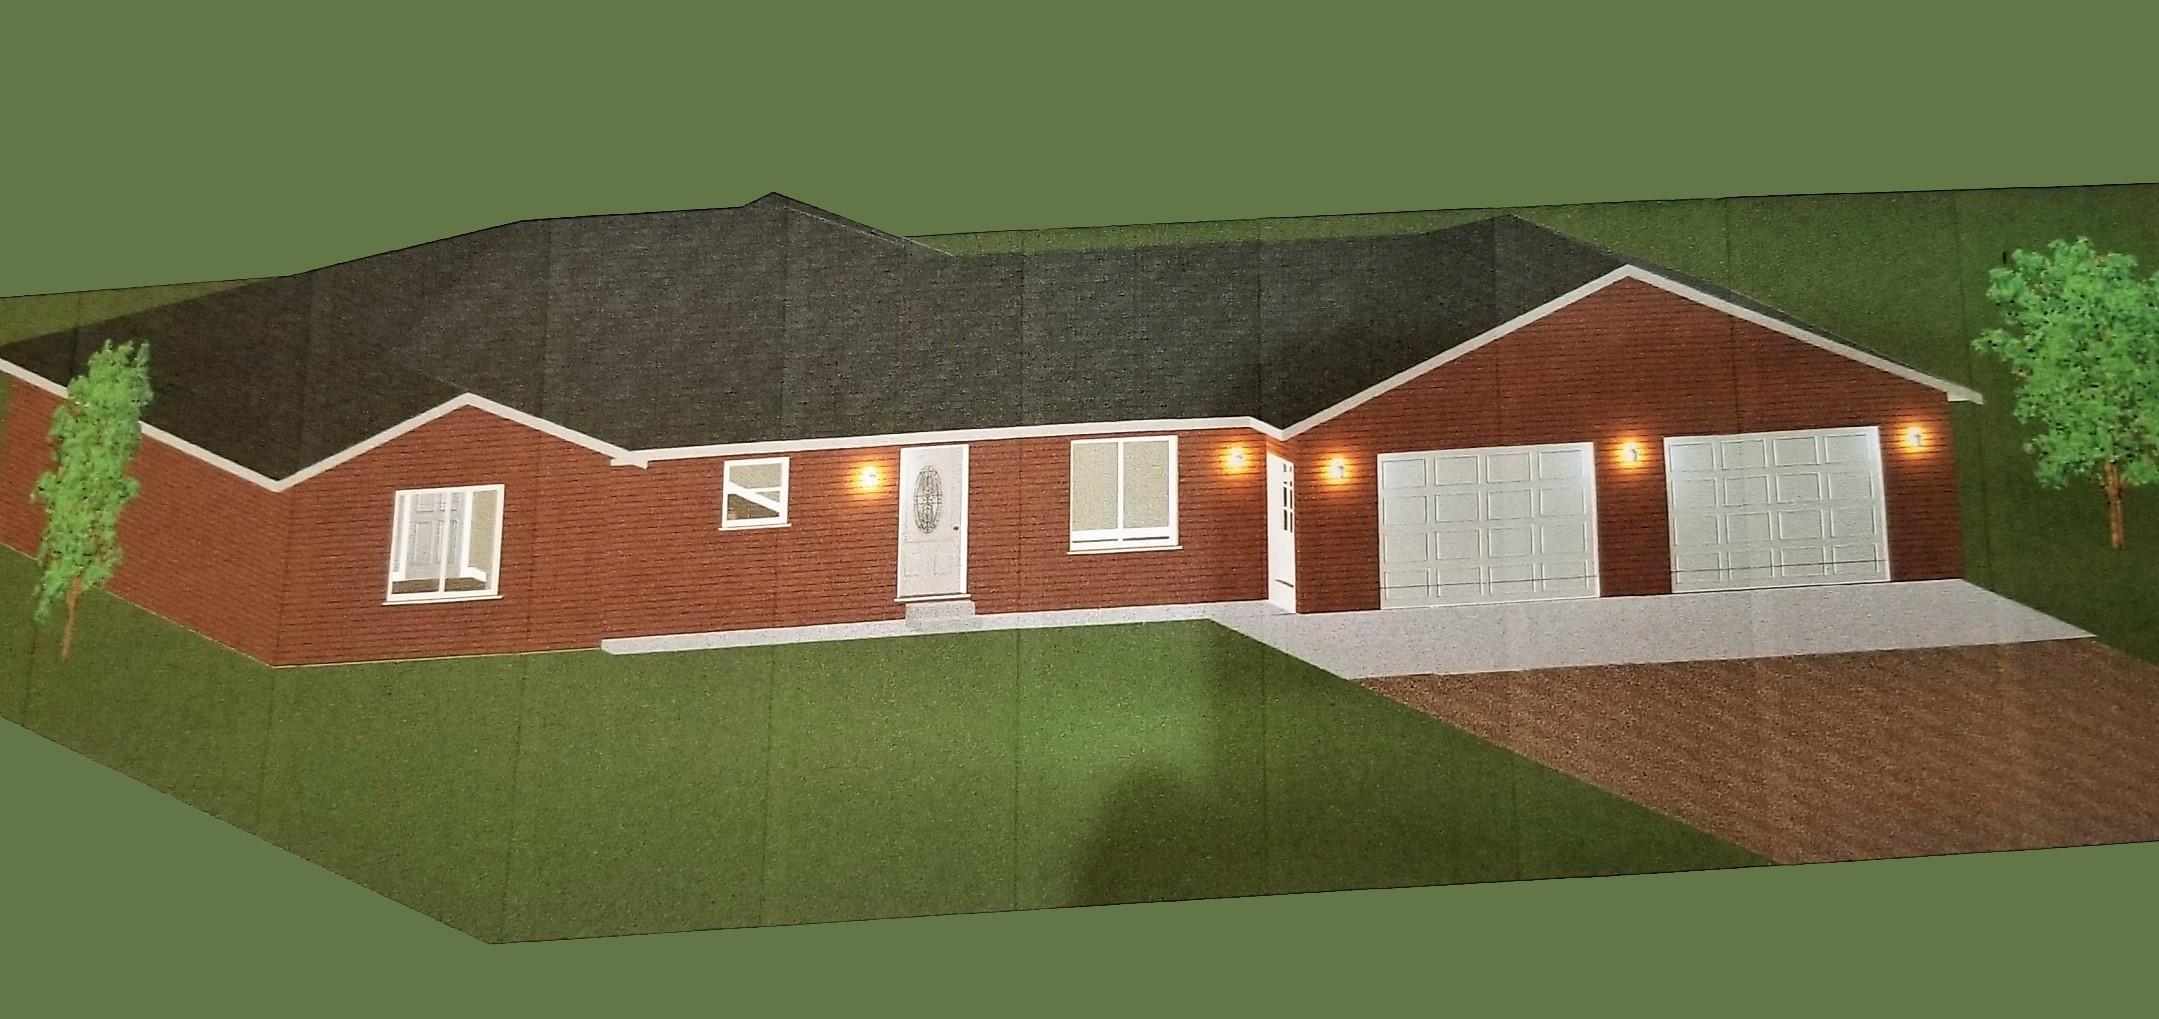 TO BE BUILT:  4 bed, 2 bath, home on 5 acres in newer subdivision between Great Falls & Ulm. Vaulted ceilings where possible. Need more space?  Add an unfinished basement for $19,000!  (2) Horses welcome.  Meet w/the Builder & create a semi-custom home of their own!  Pick your spot - pick your colors...Schools: West Elementary, North Middle School & CMR, Other Schools: Ulm, private, Paris